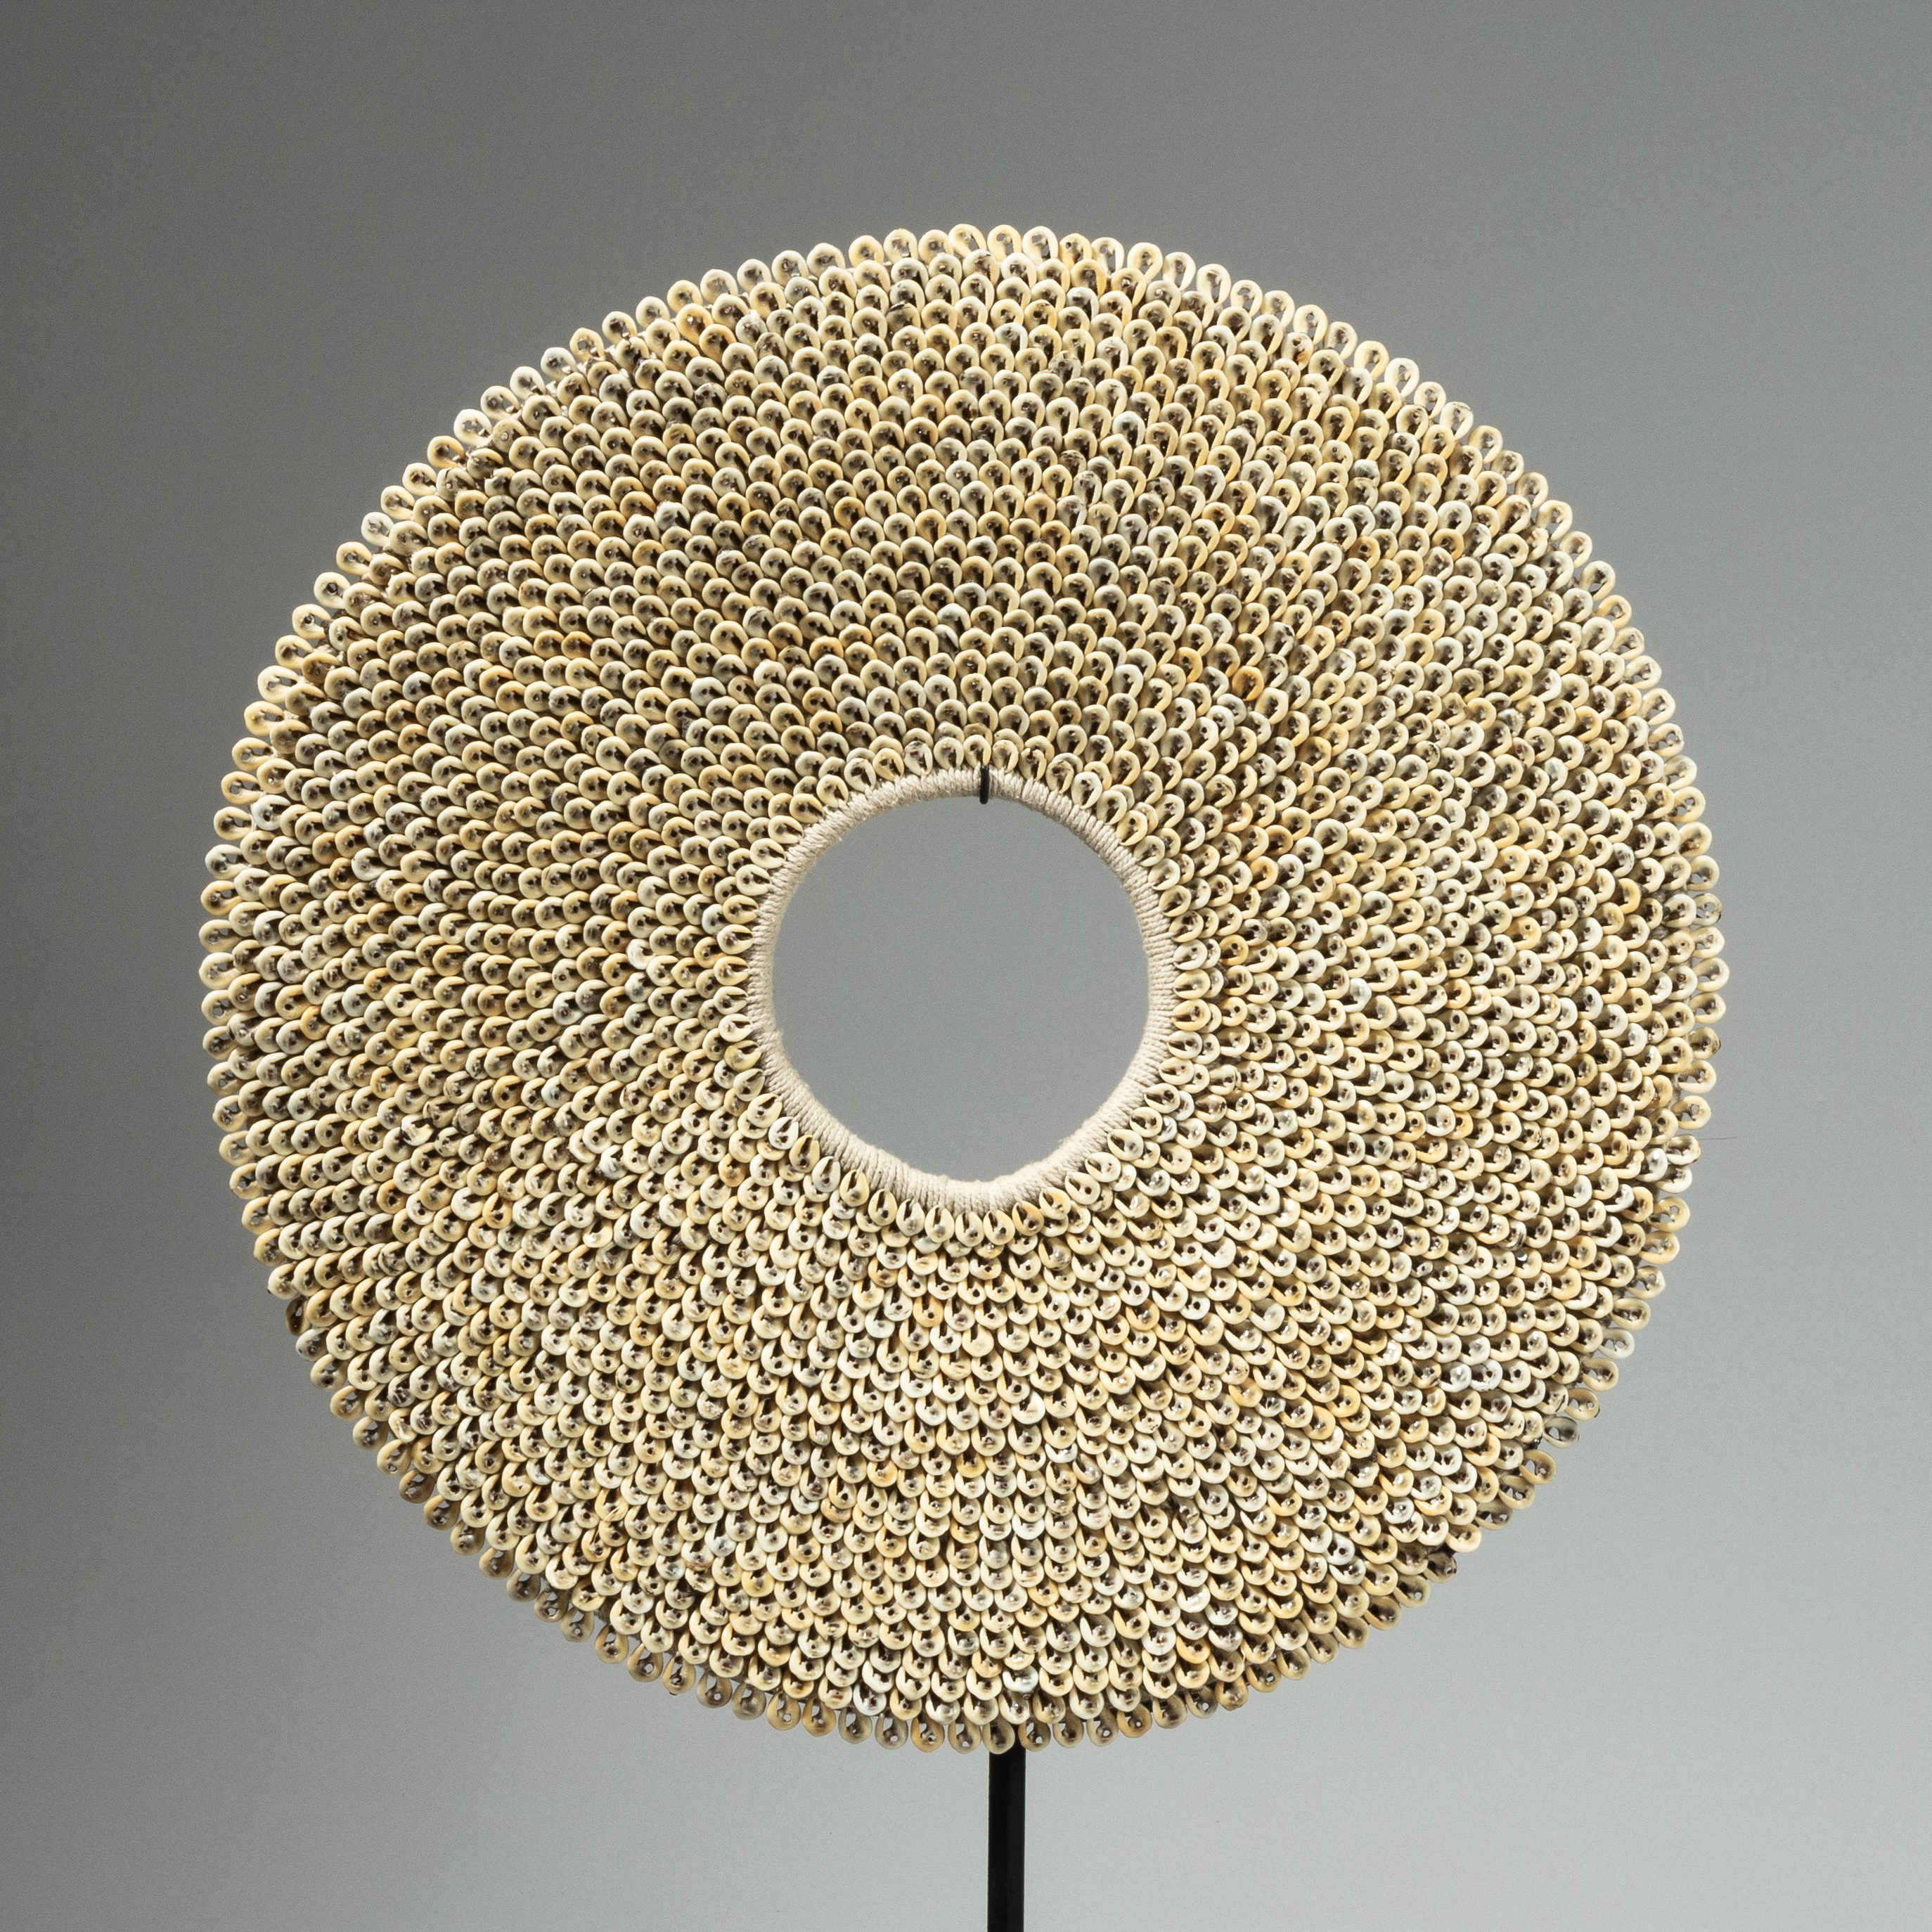 SD A PRETTY COWRIE SHELL RING FROM PAPUA NEW GUINEA ( No 4260)